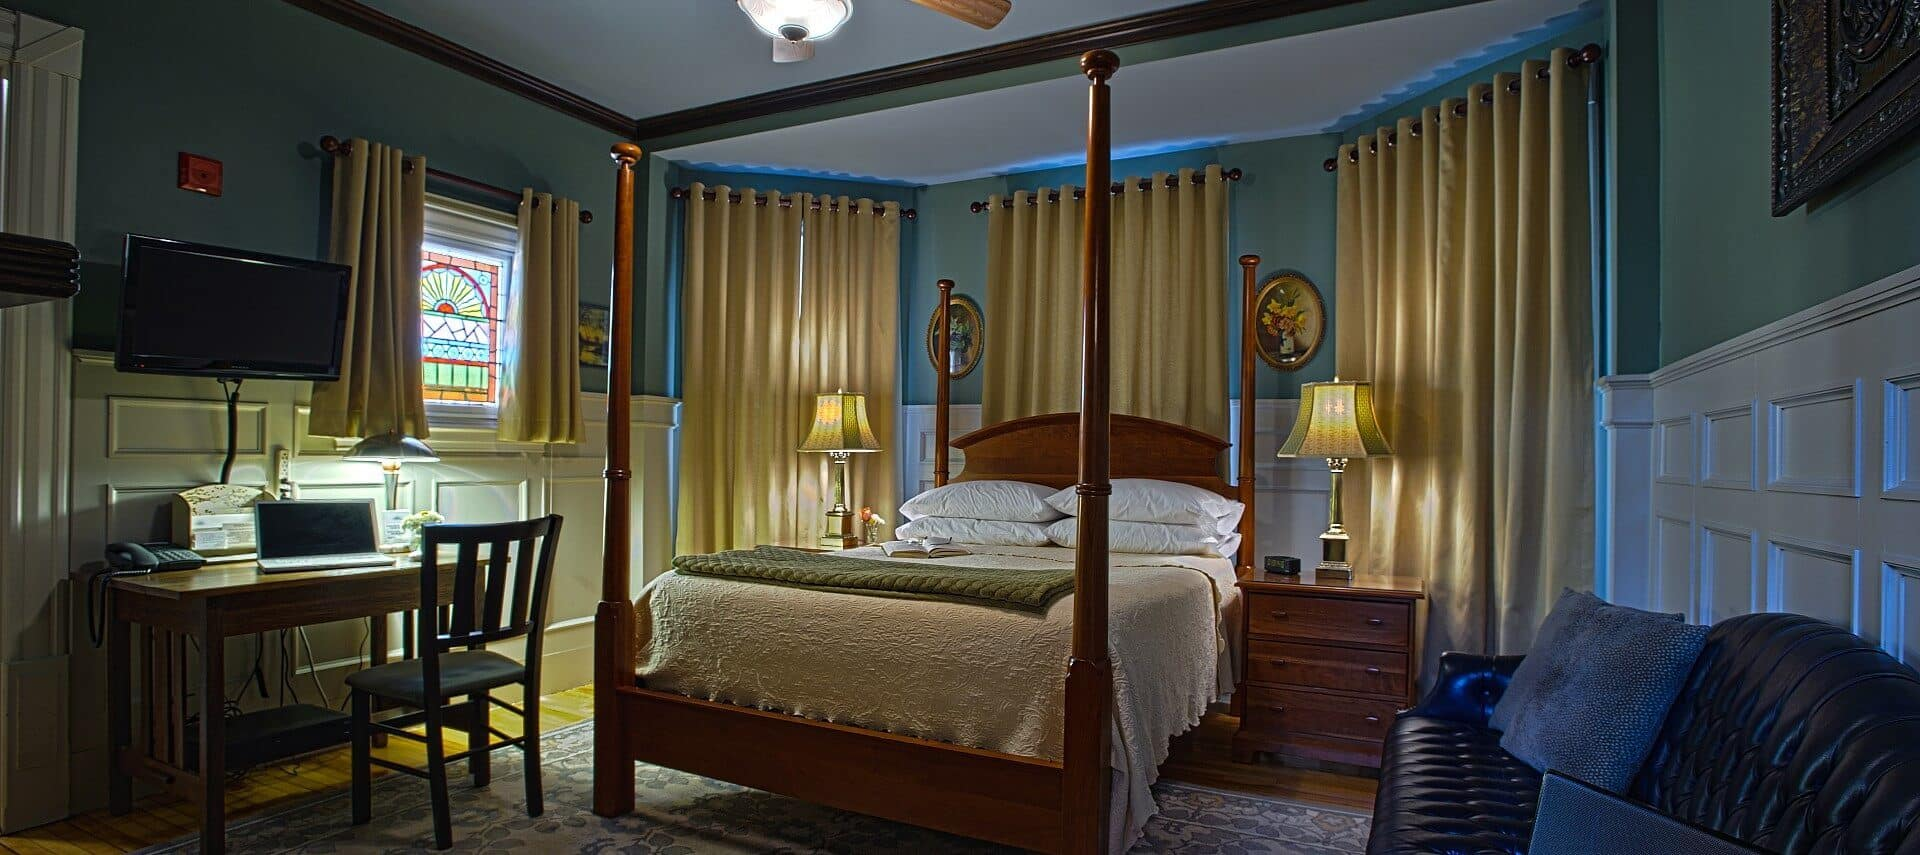 Large four poster bed with white linens in a room with many windows covered in curtains, board and batten walls and black leather couch.